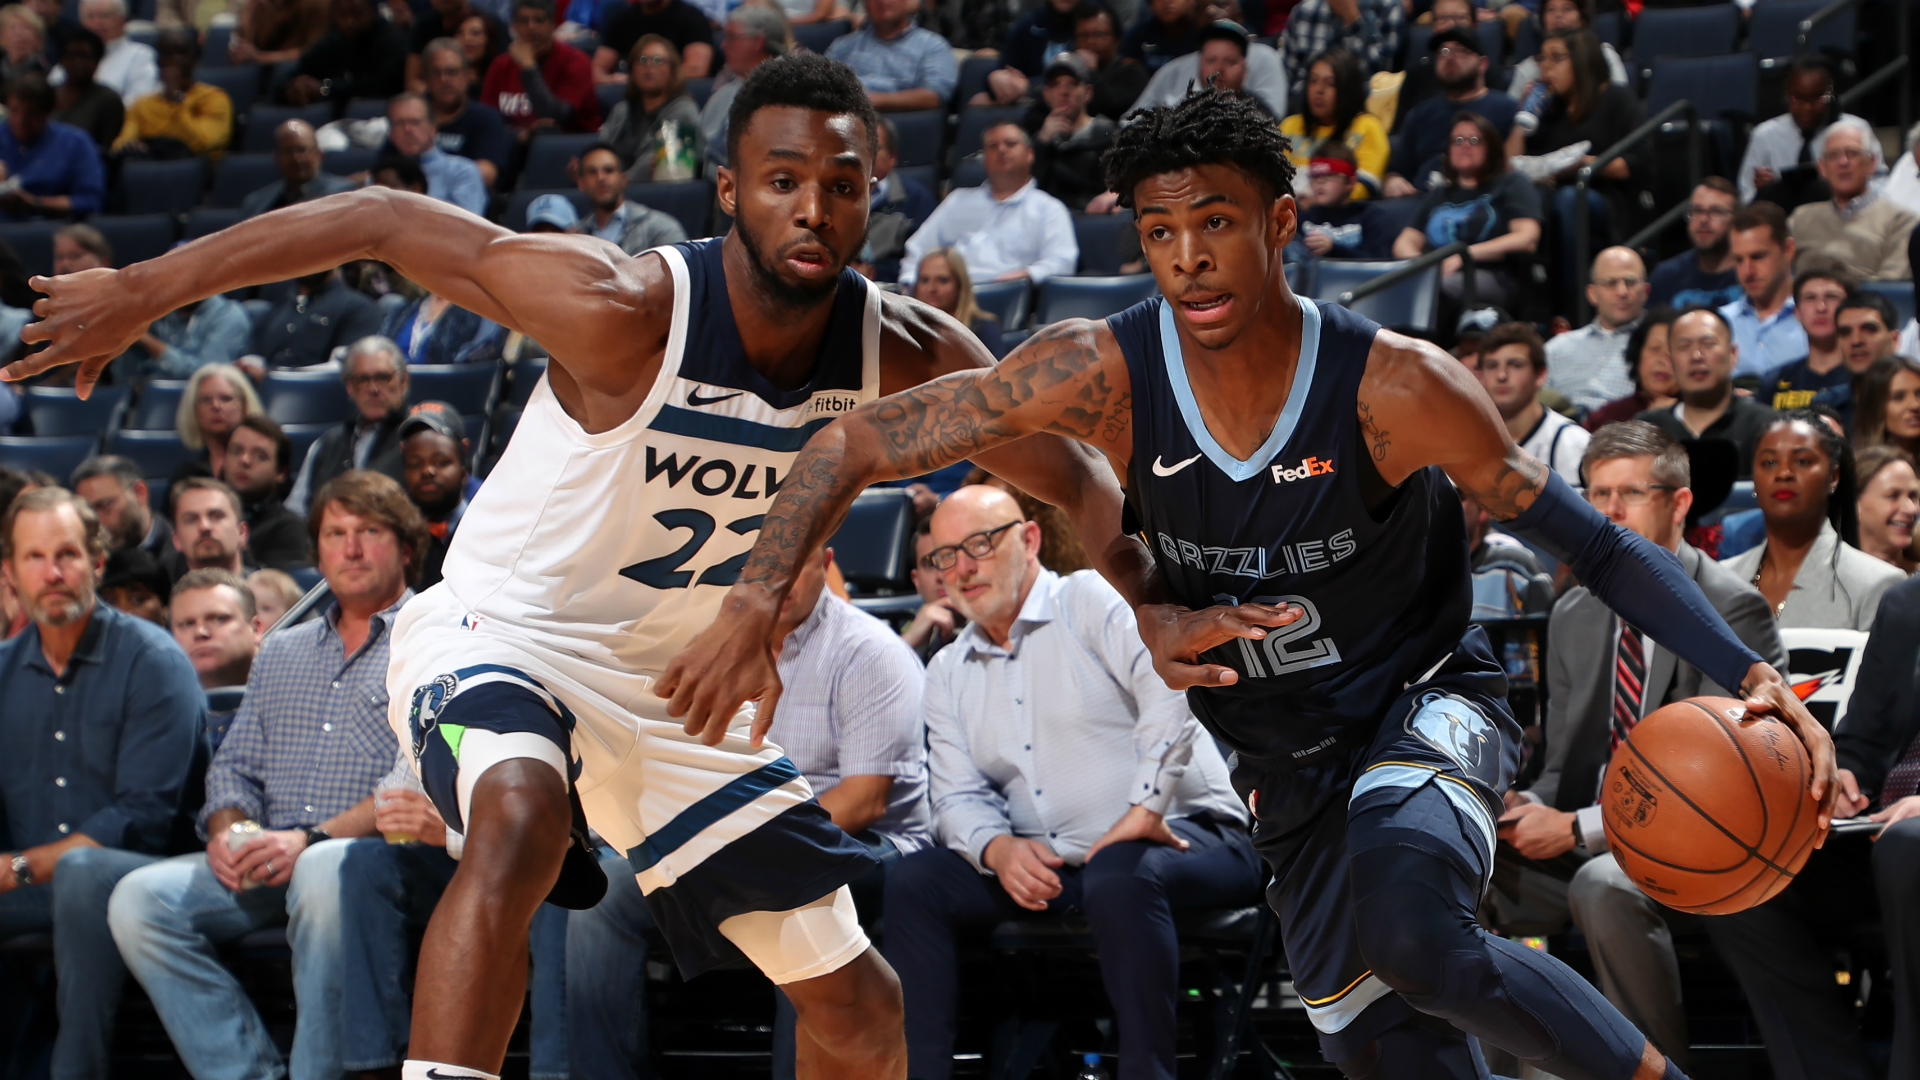 Timberwolves @ Grizzlies